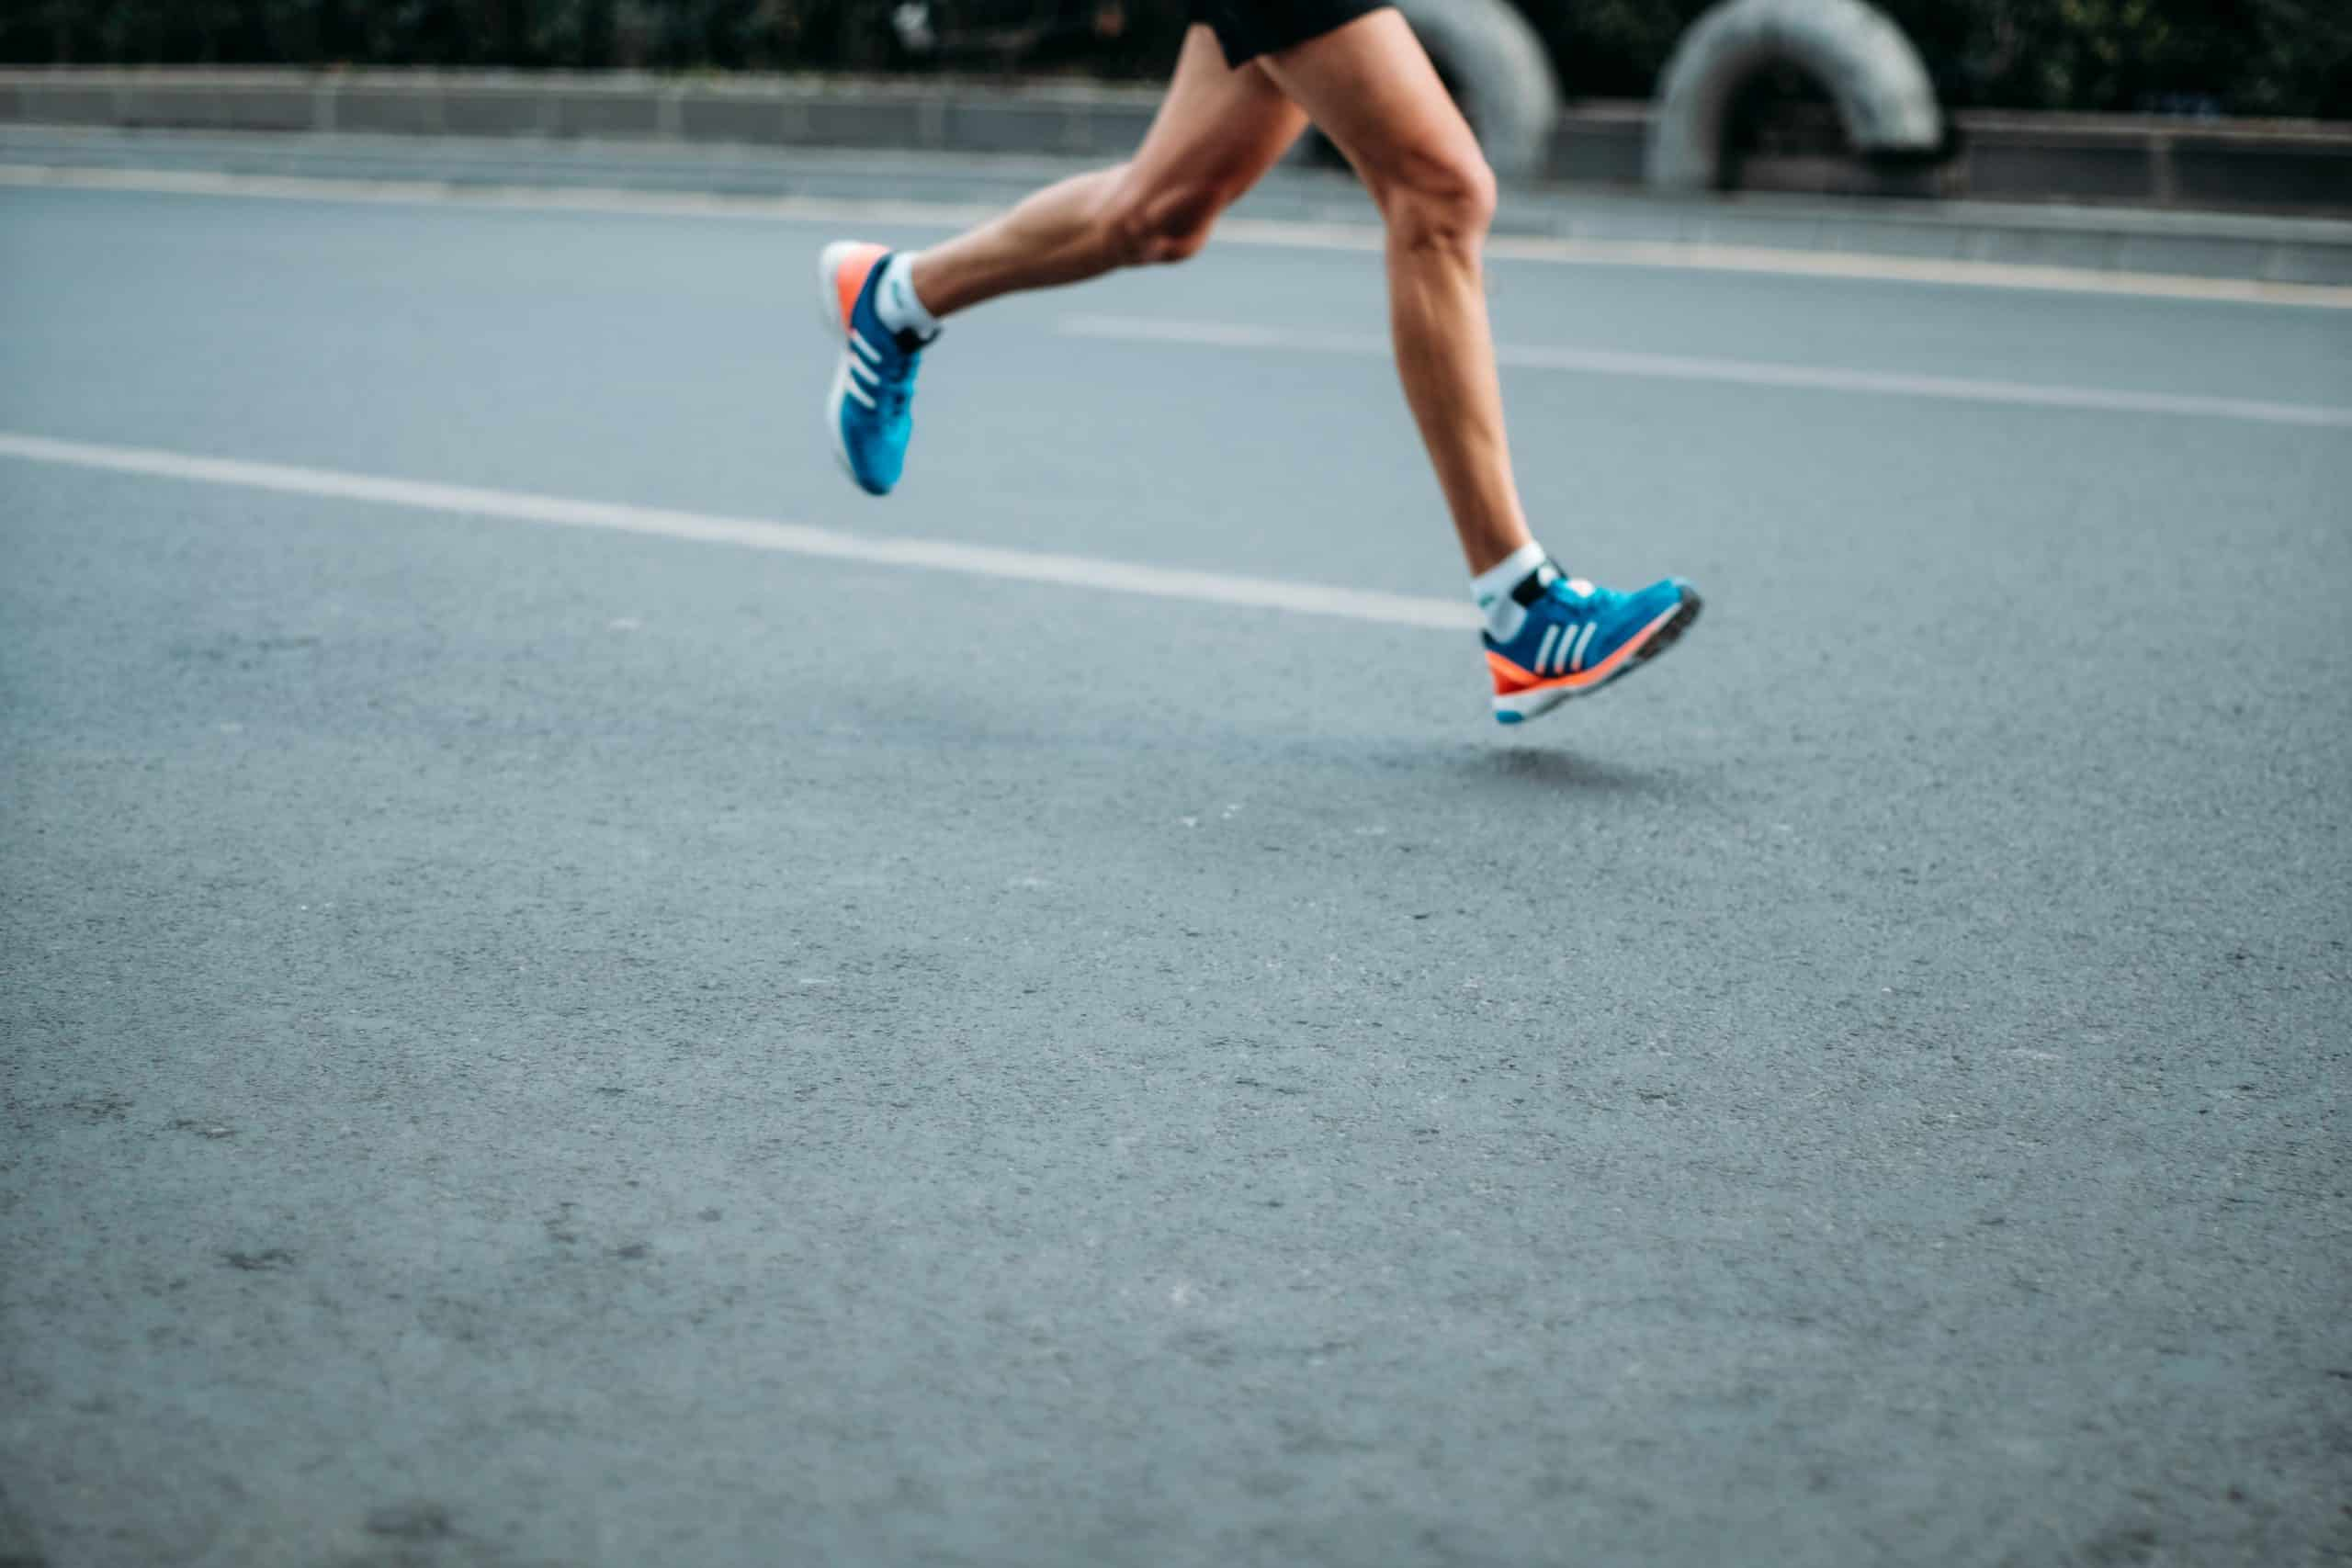 Person running in running shoes